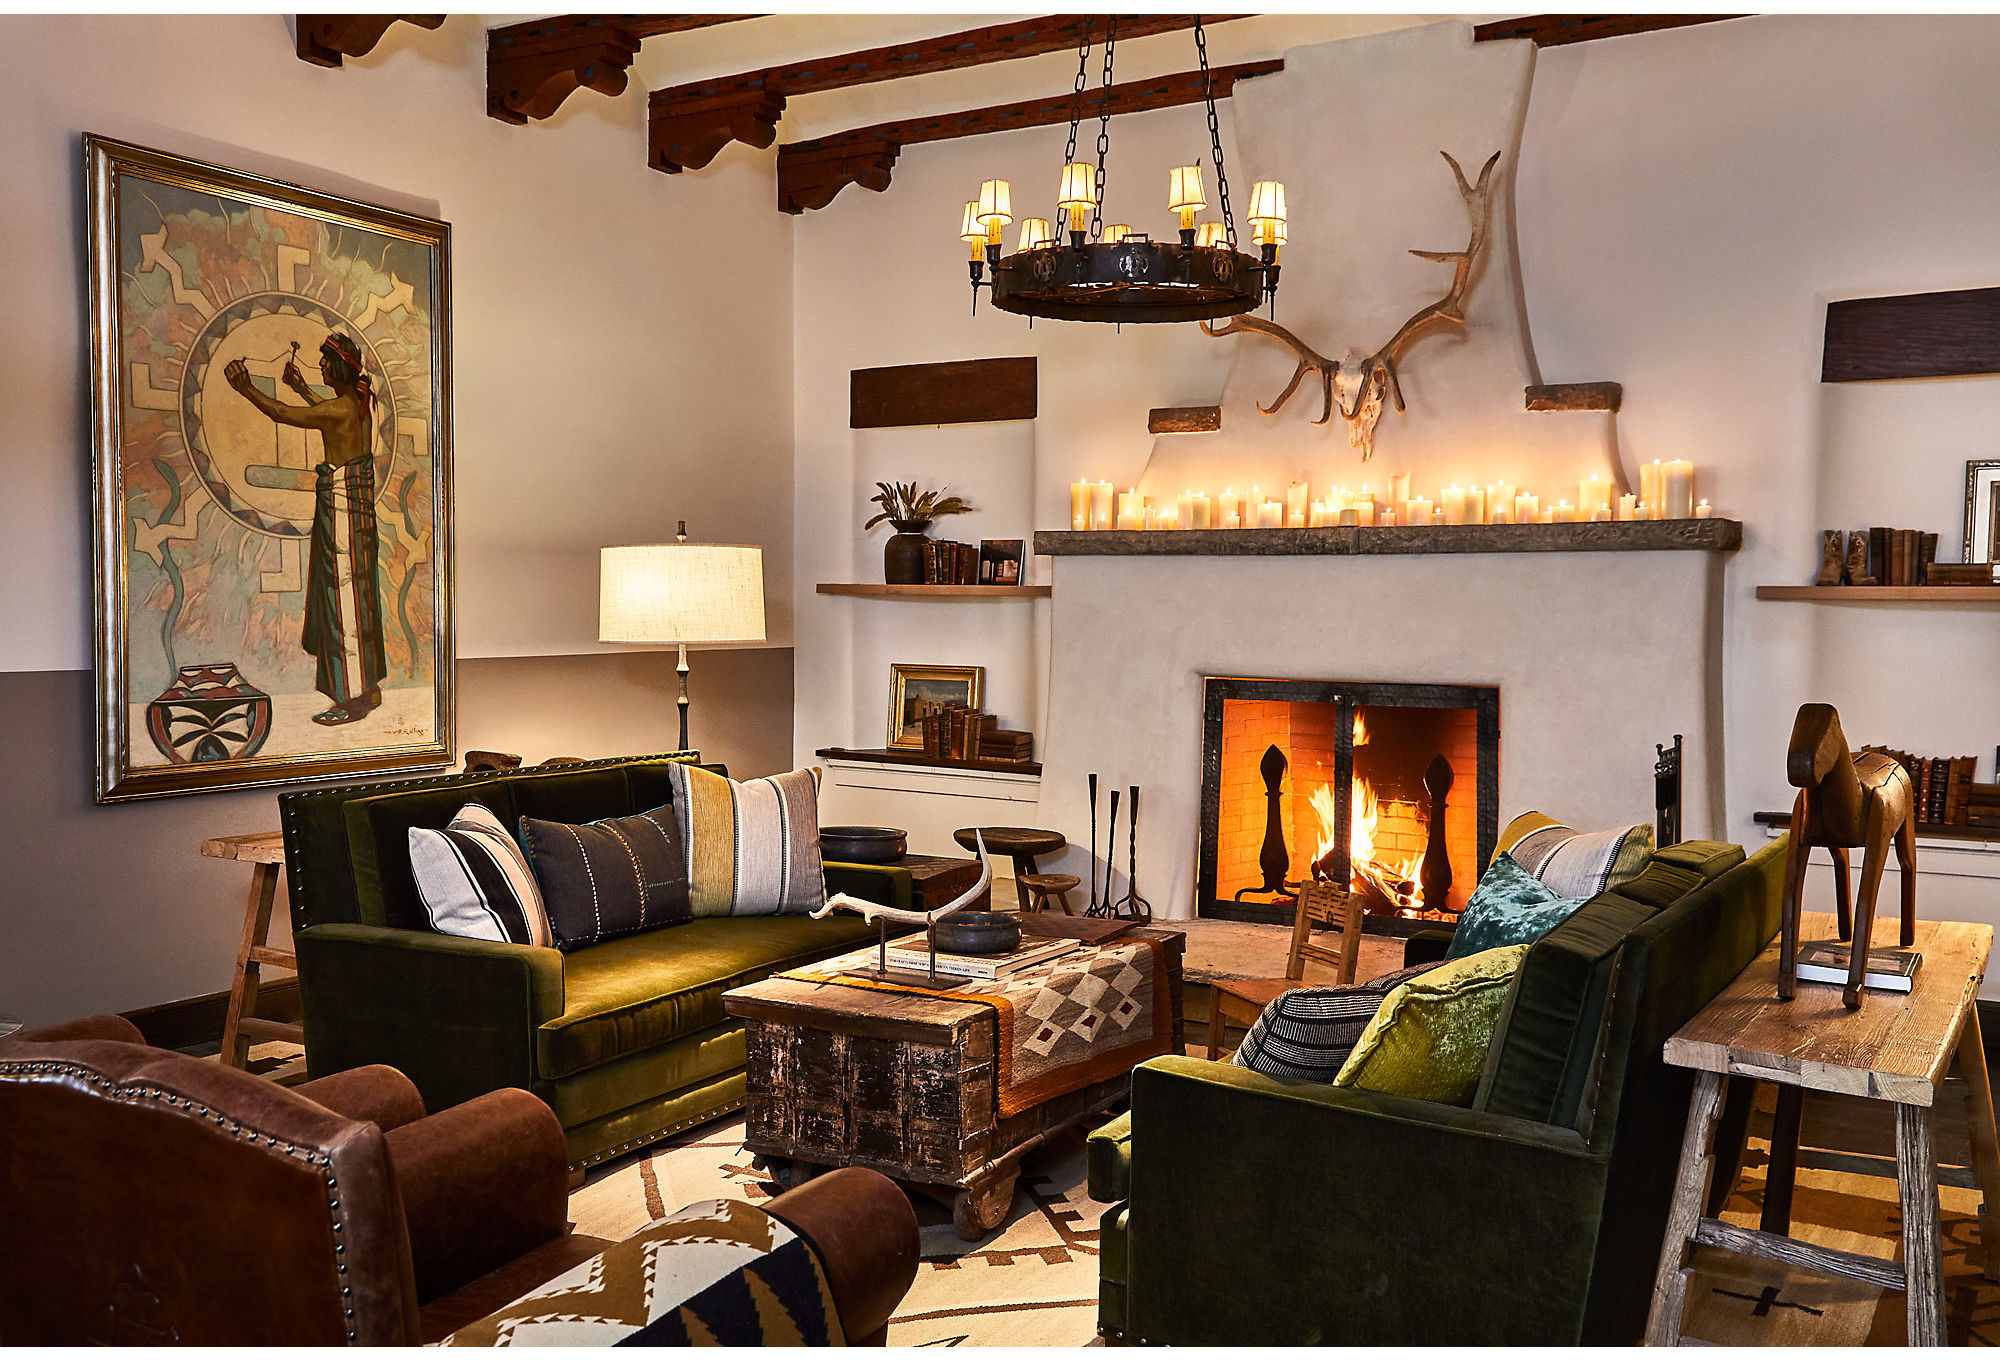 The living room of Bishop's Lodge is full of texture and nods to the surrounding history.